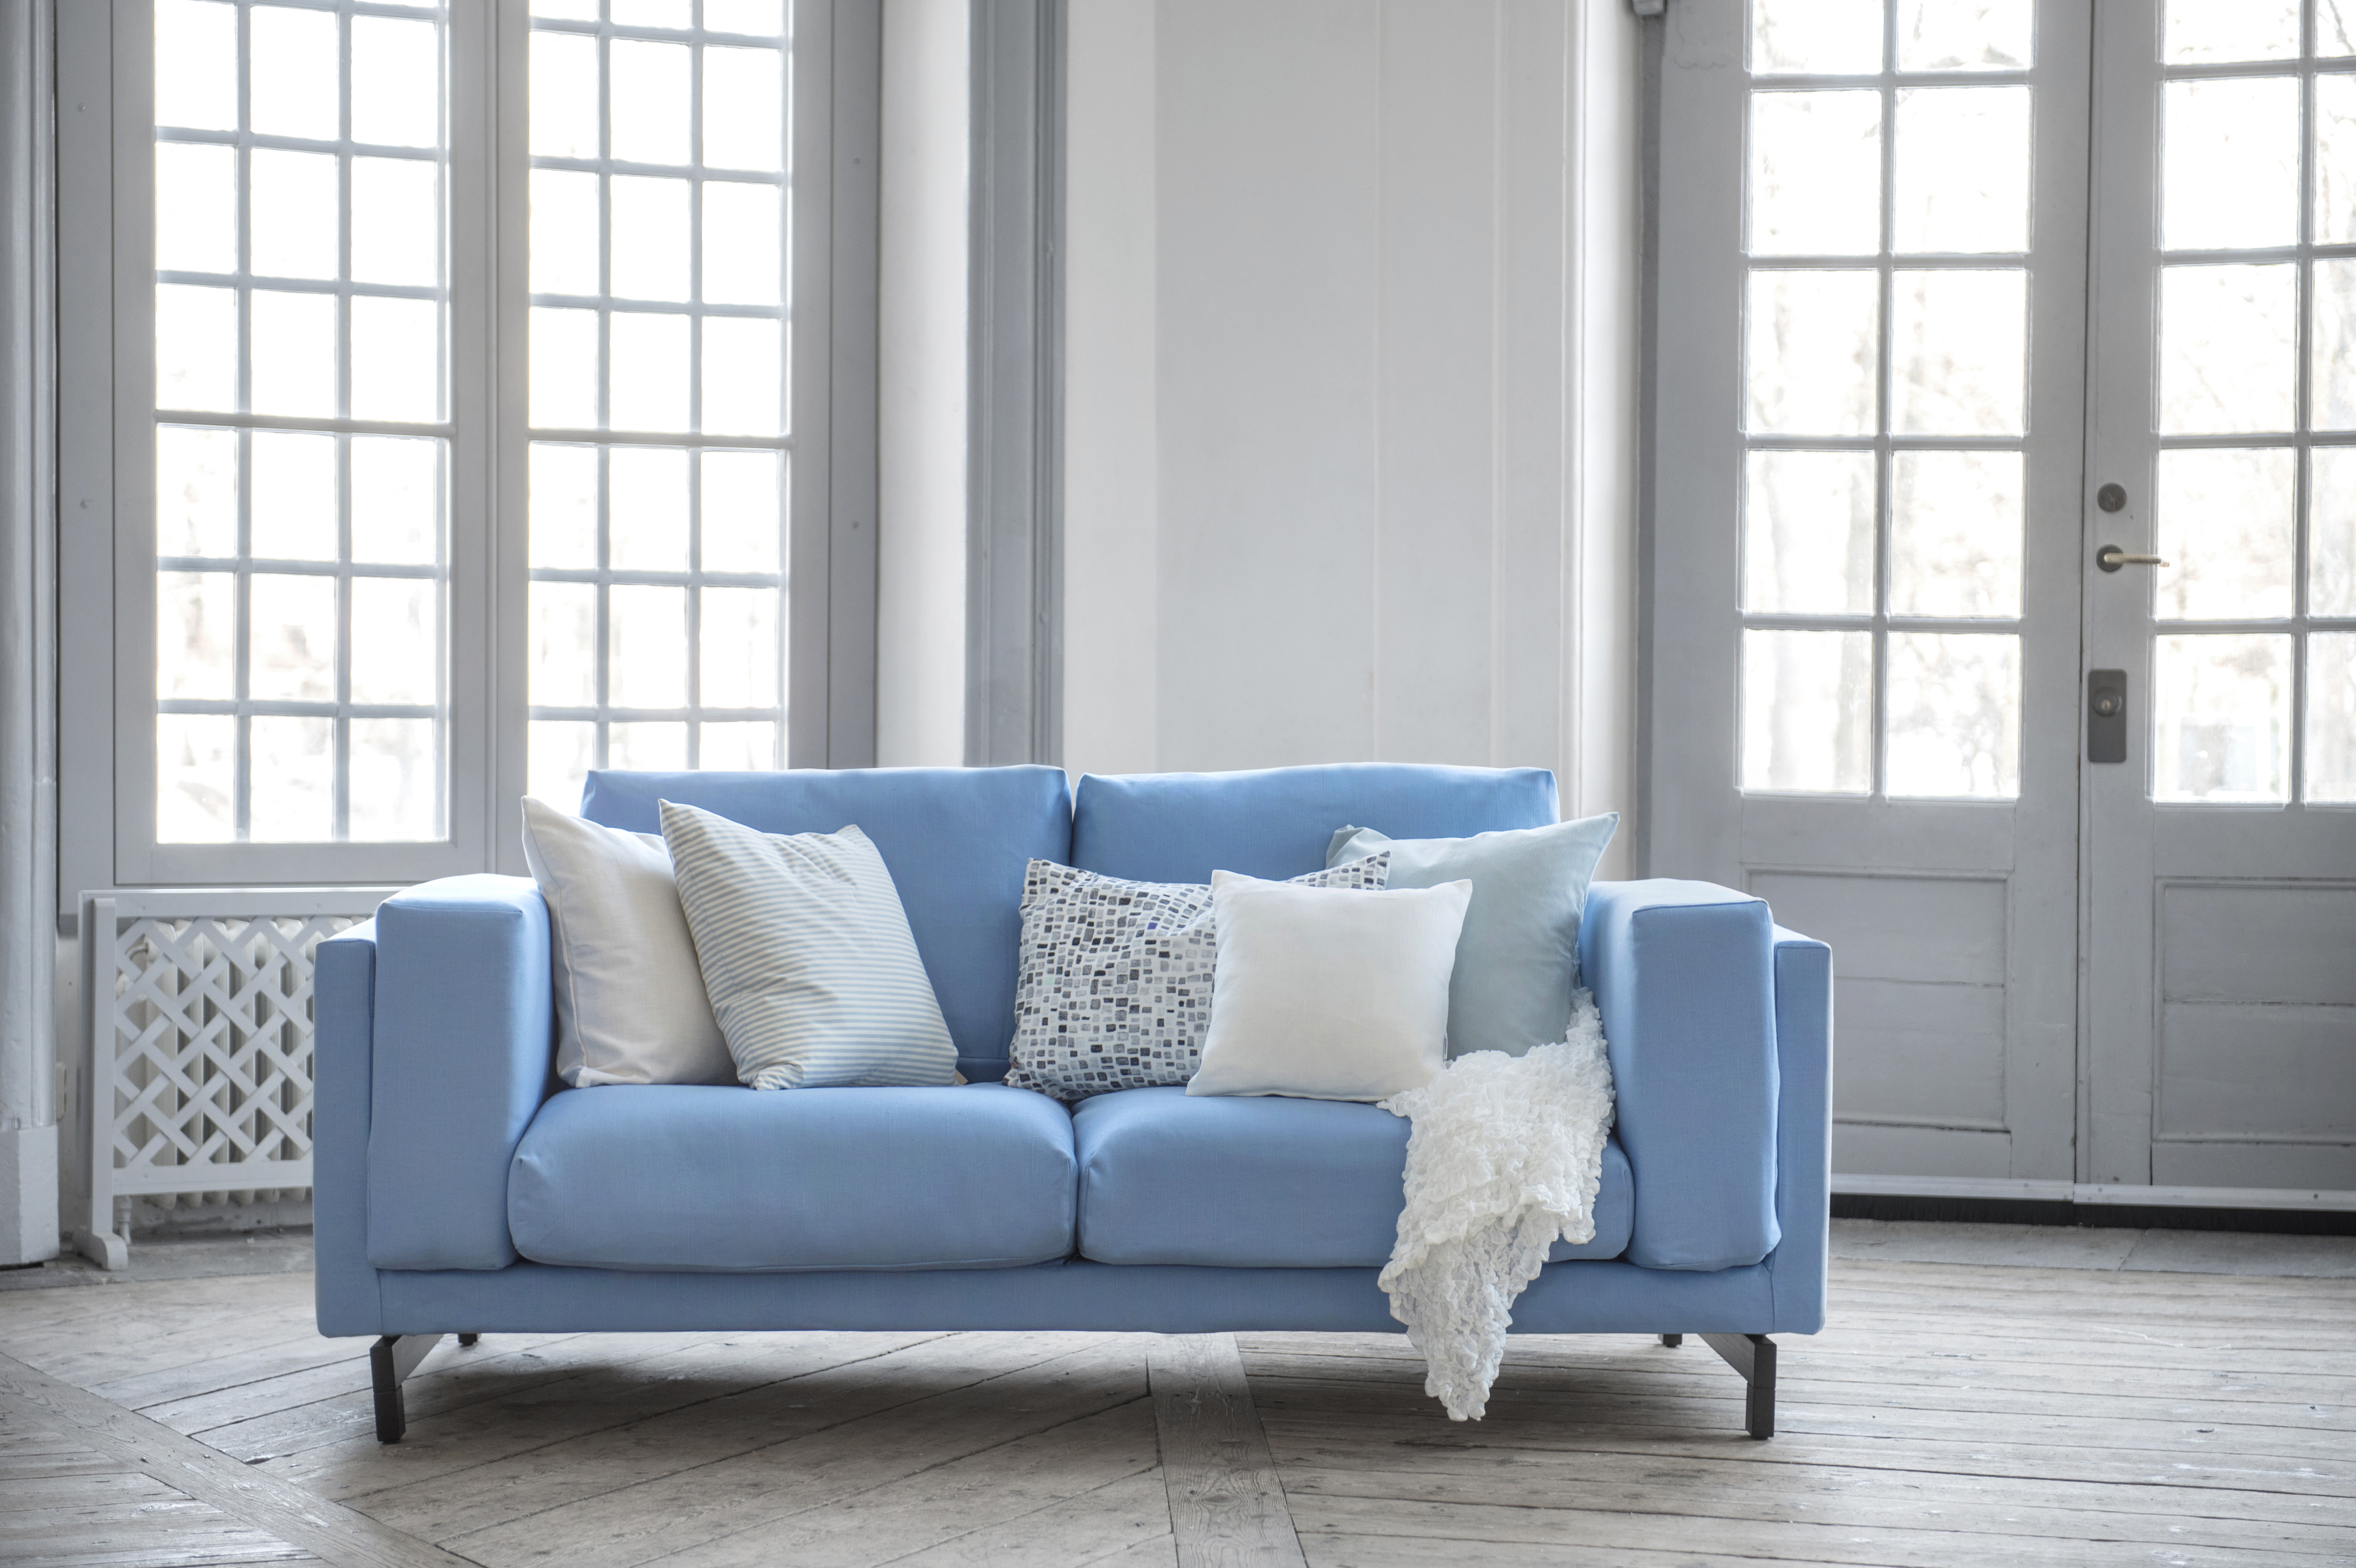 Bemz launches covers for IKEA s Nockeby sofa Bemz